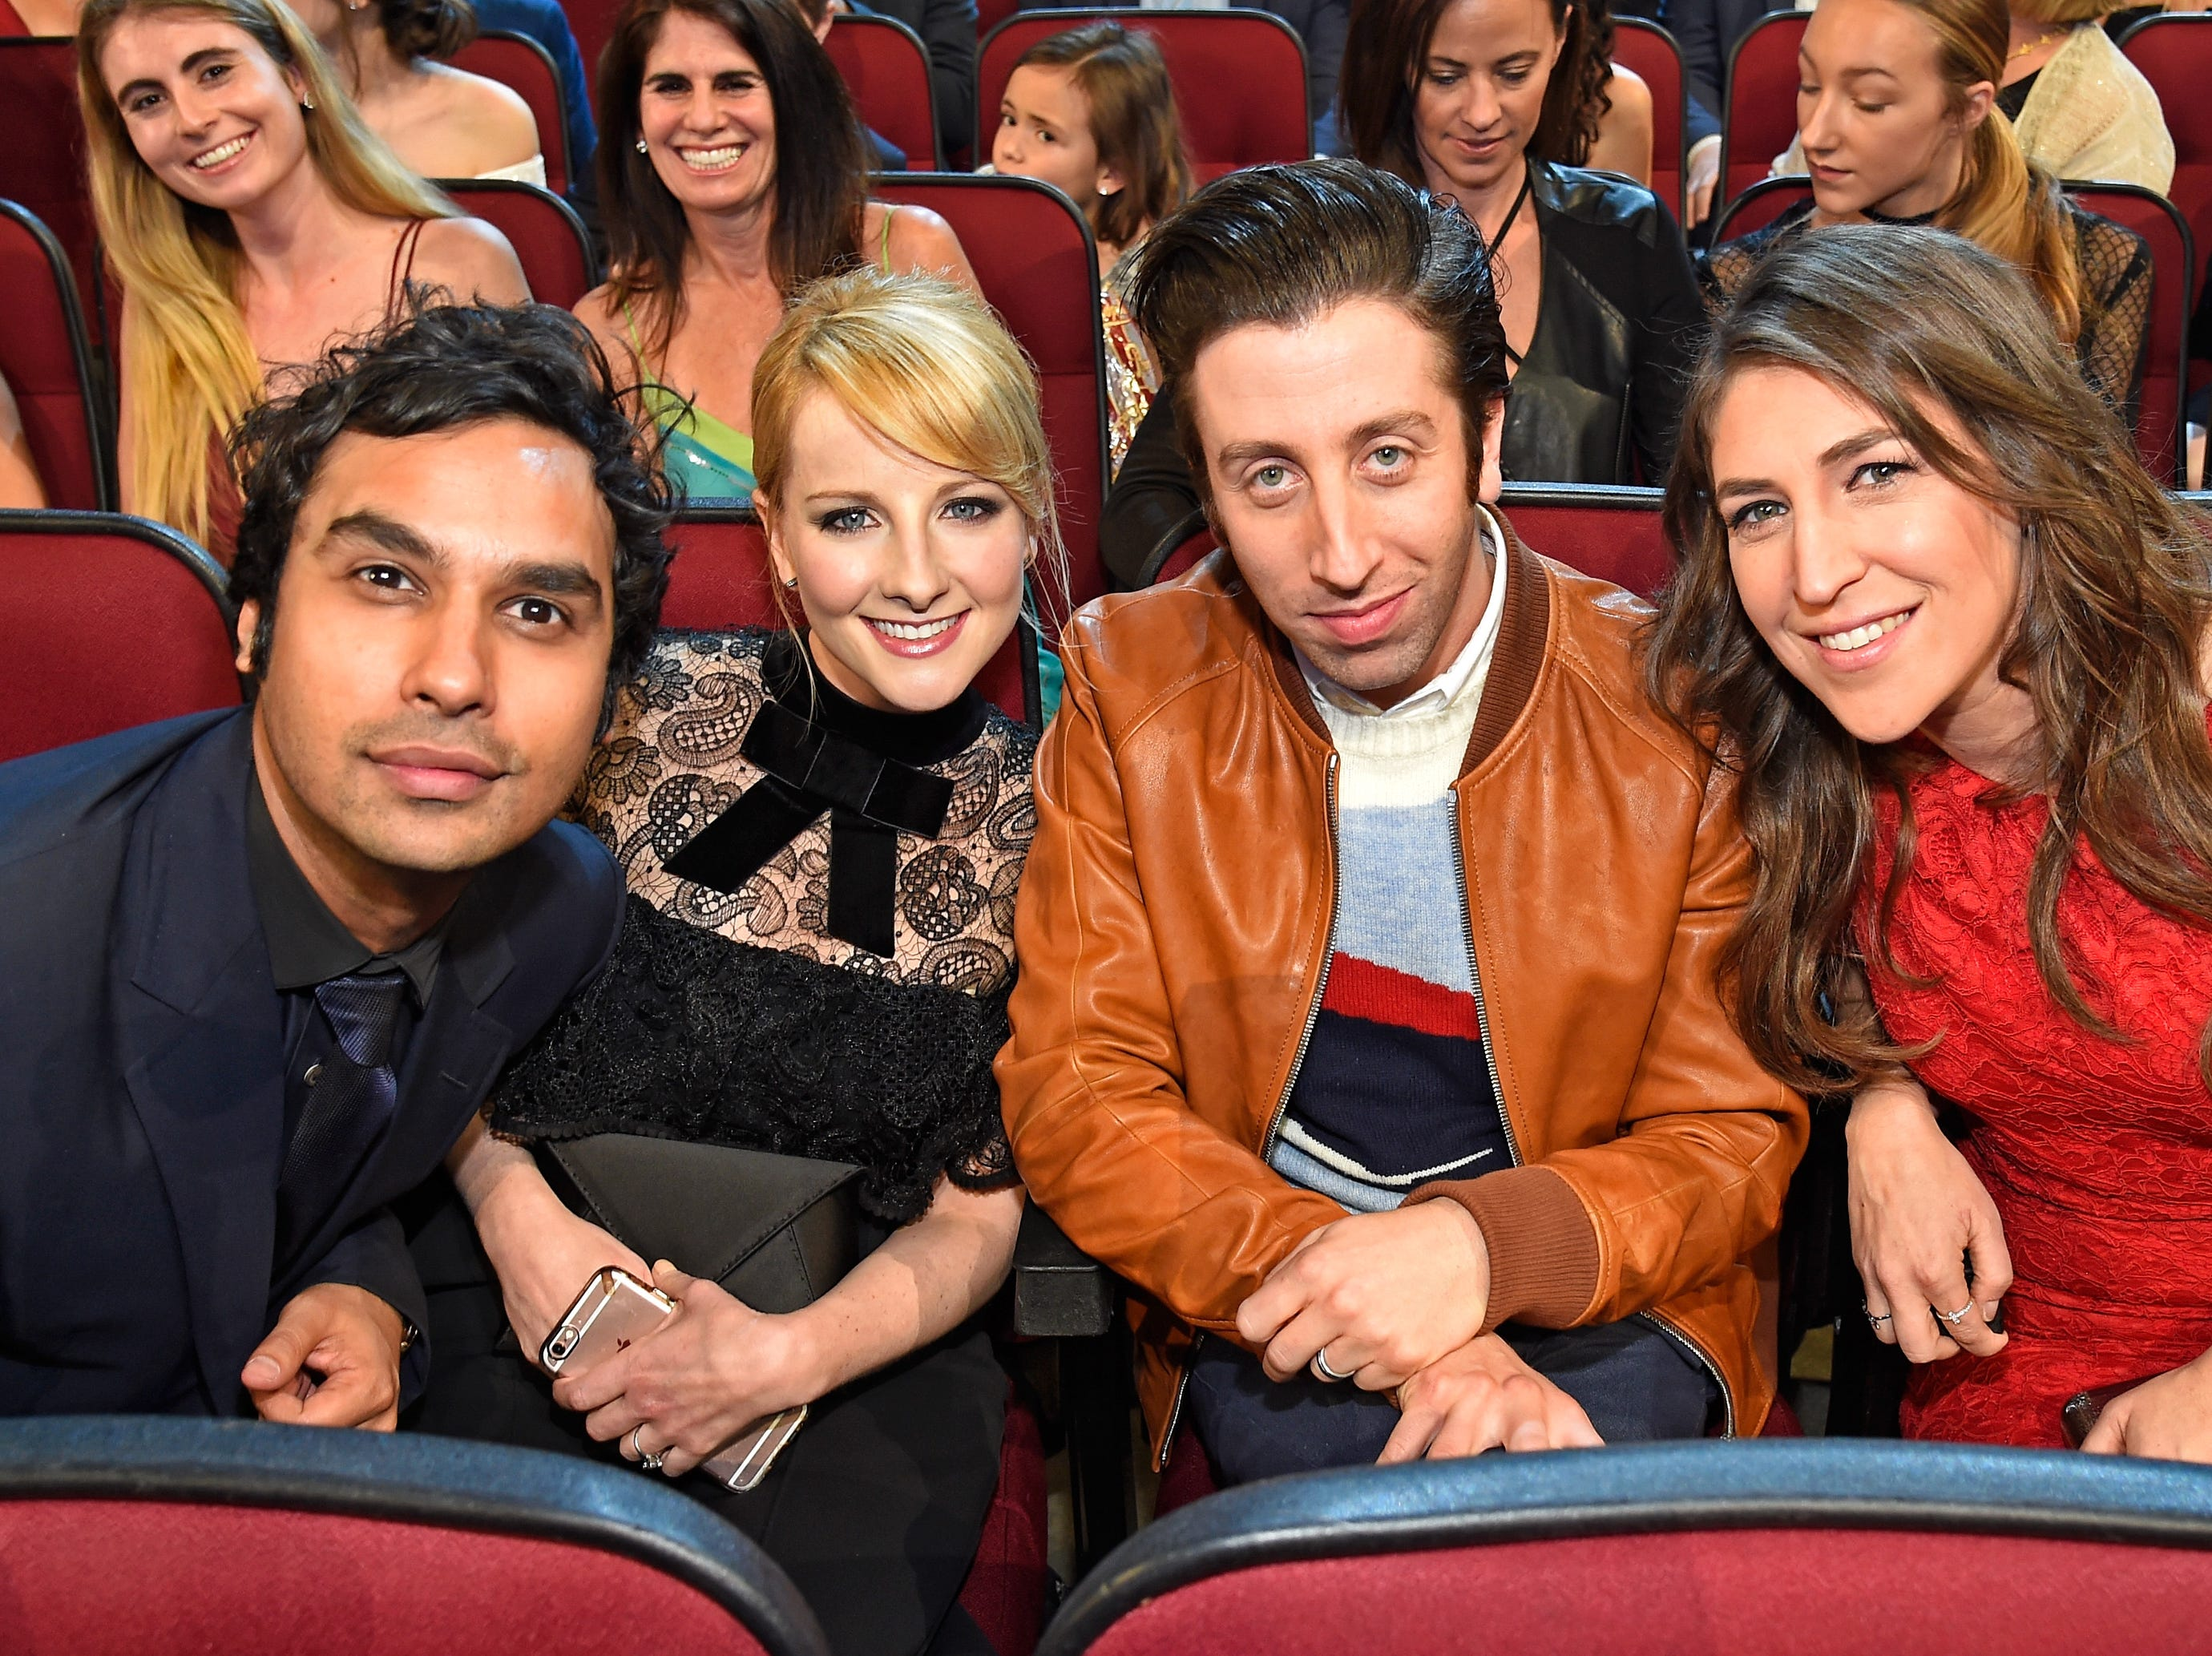 LOS ANGELES, CA - JANUARY 18:  (L-R) Actors Kunal Nayyar, Melissa Rauch, Simon Helberg, and Mayim Bialik attend the People's Choice Awards 2017 at Microsoft Theater on January 18, 2017 in Los Angeles, California.  (Photo by Kevin Mazur/WireImage) ORG XMIT: 692972273 ORIG FILE ID: 632027188